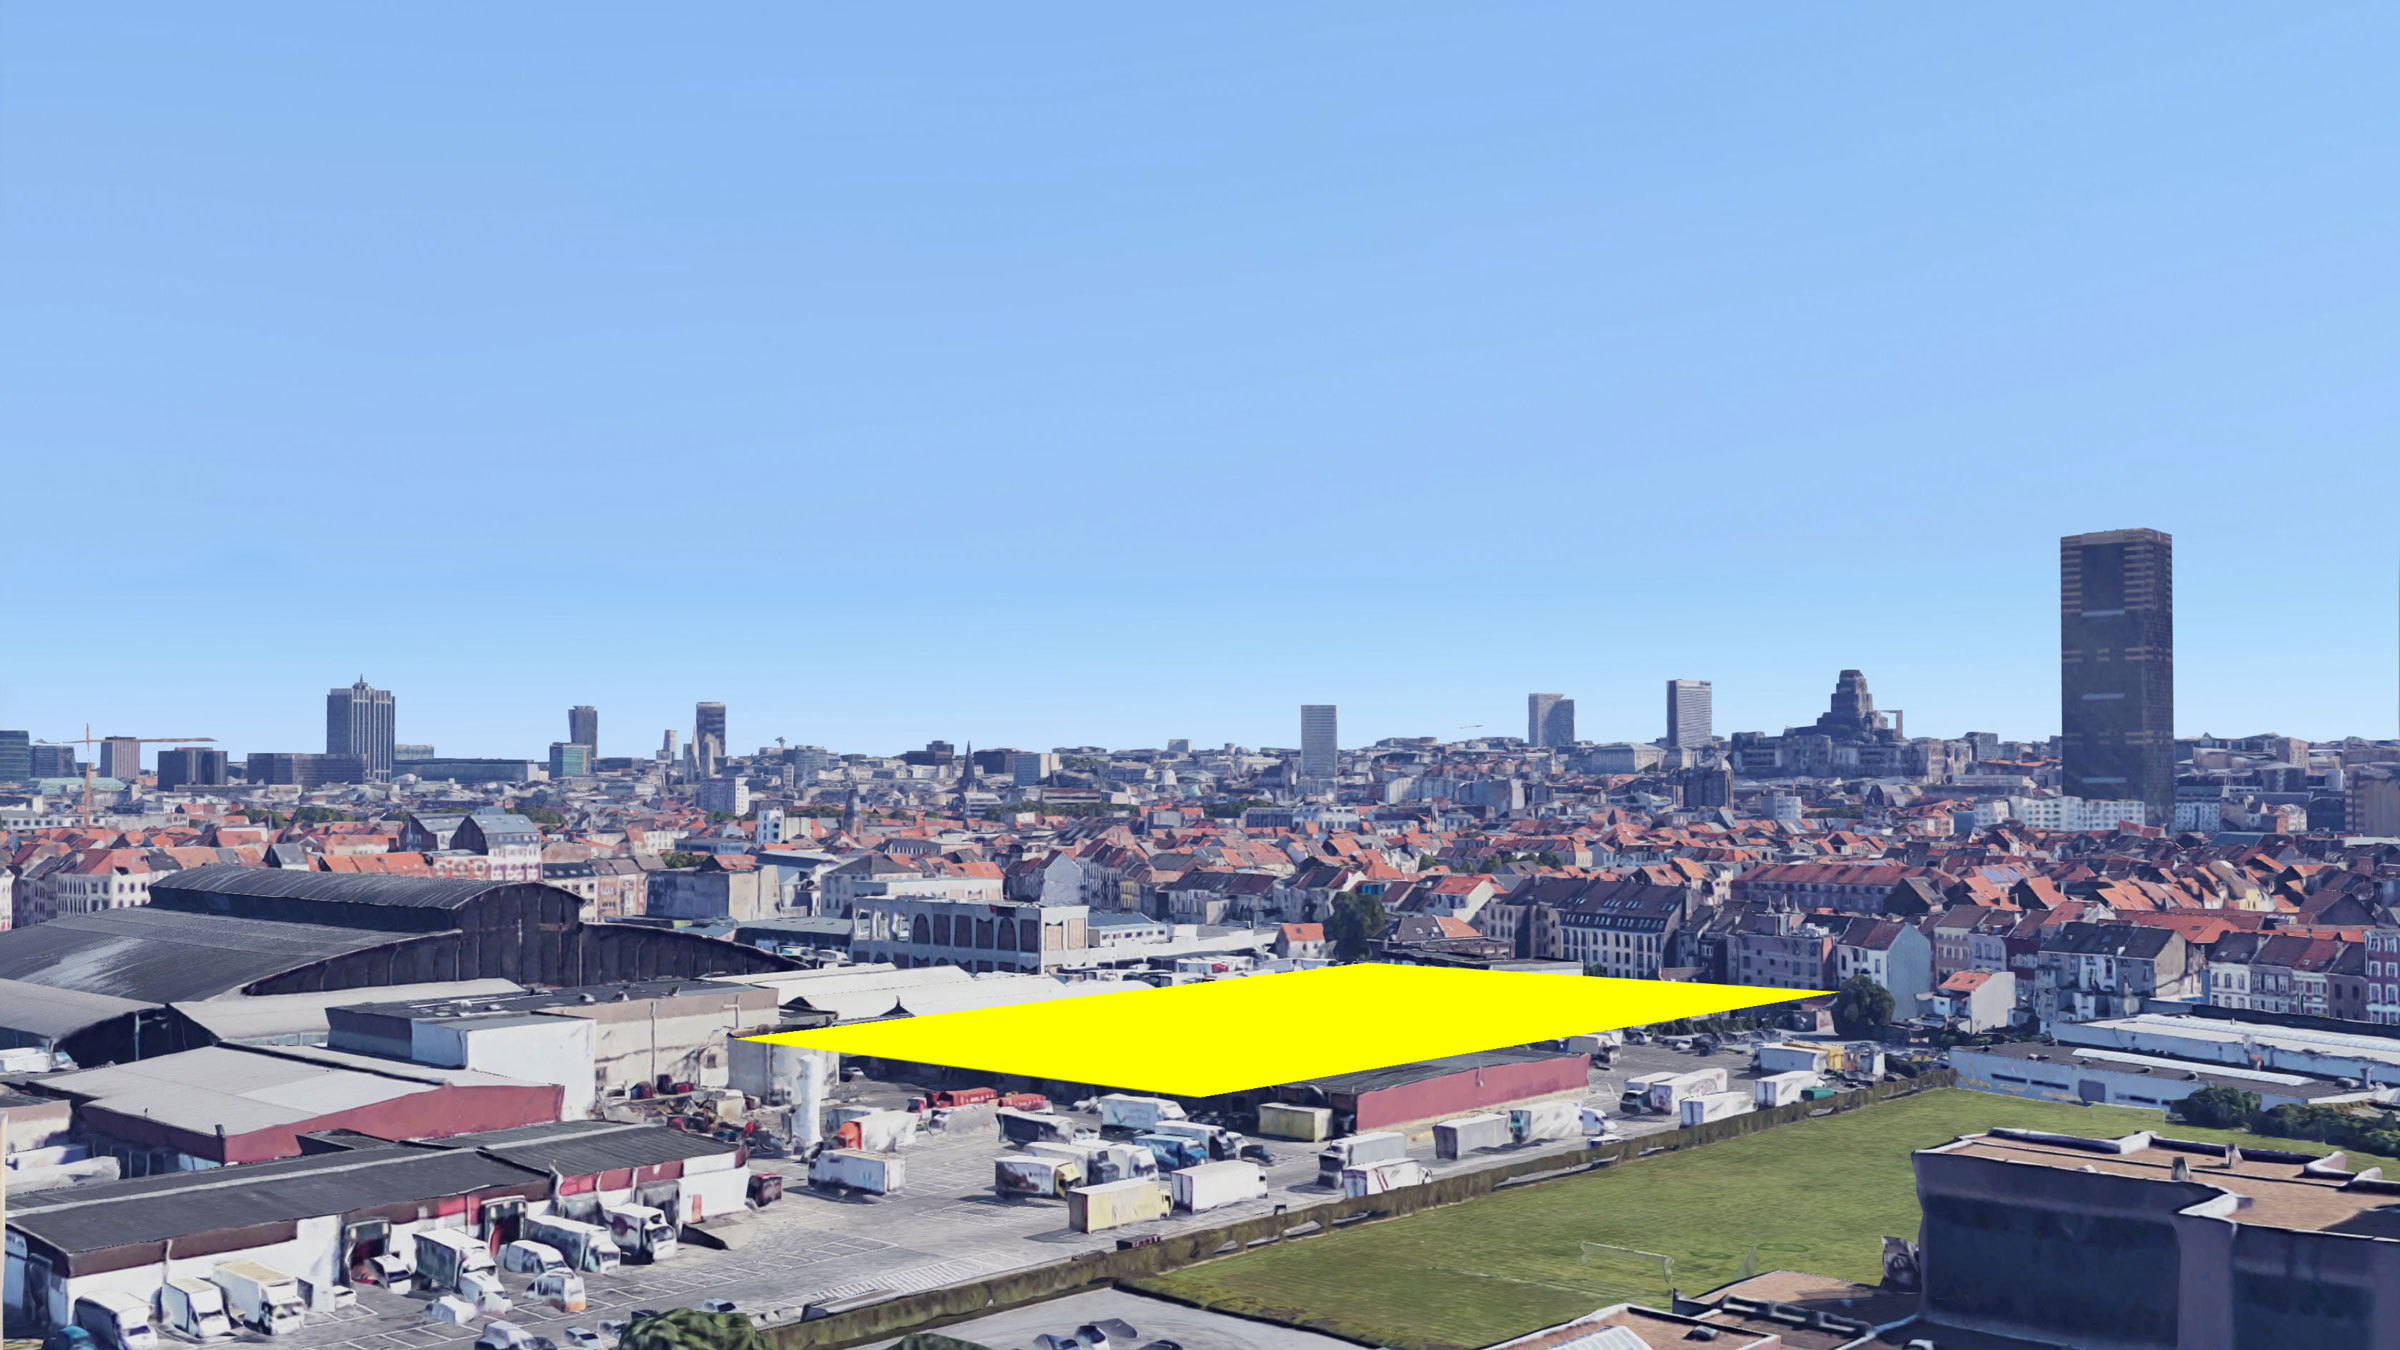 The site of the project with the skyline of Brussels. / Le site du projet avec le skyline de Bruxelles. / De site van het project met de skyline van Brussel.